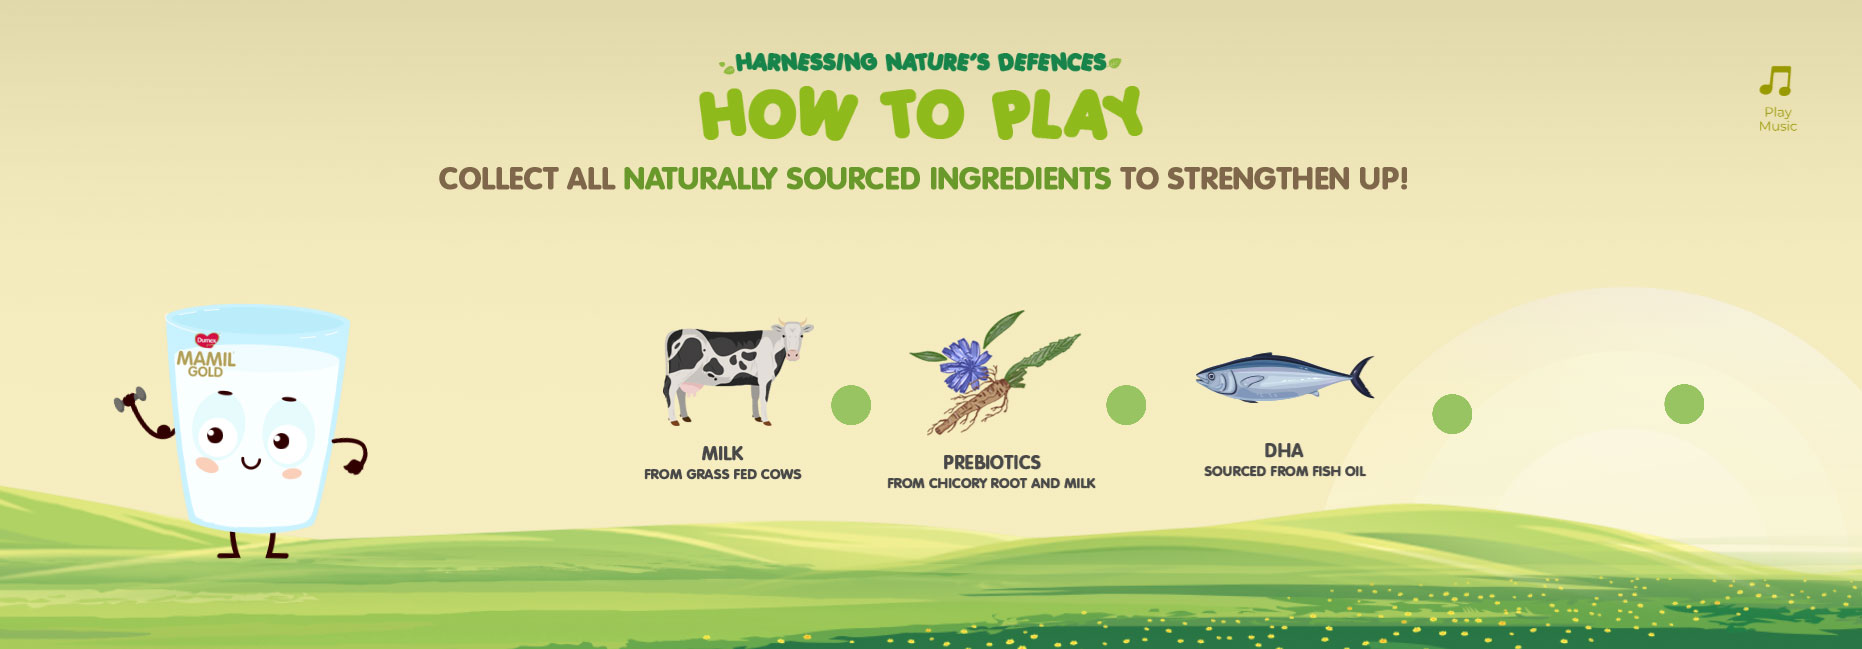 Harnessing Nature's Defences